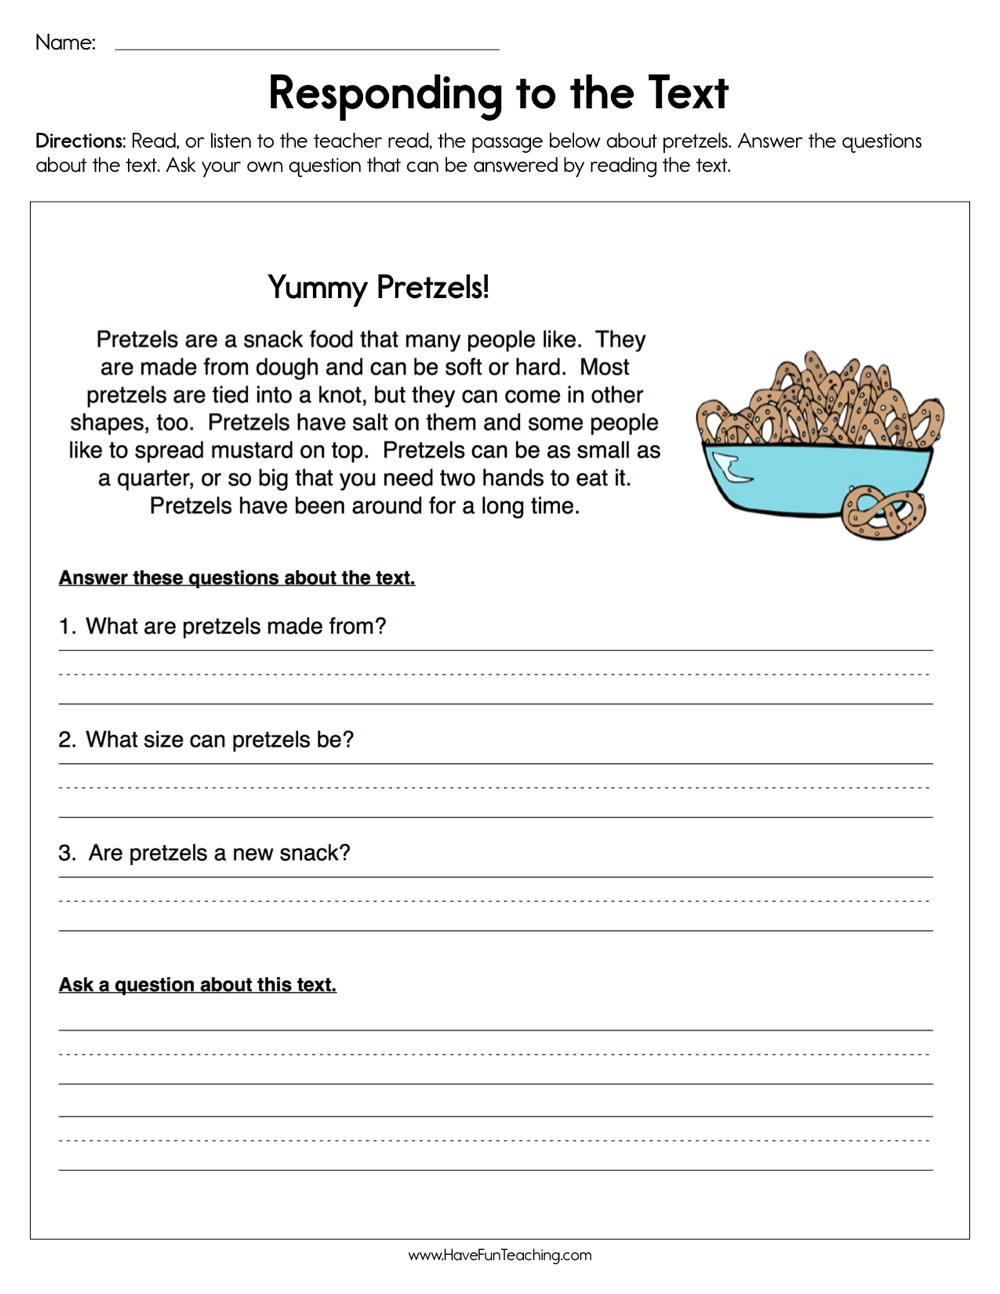 Reading and Responding Worksheets Responding to the Text Worksheet